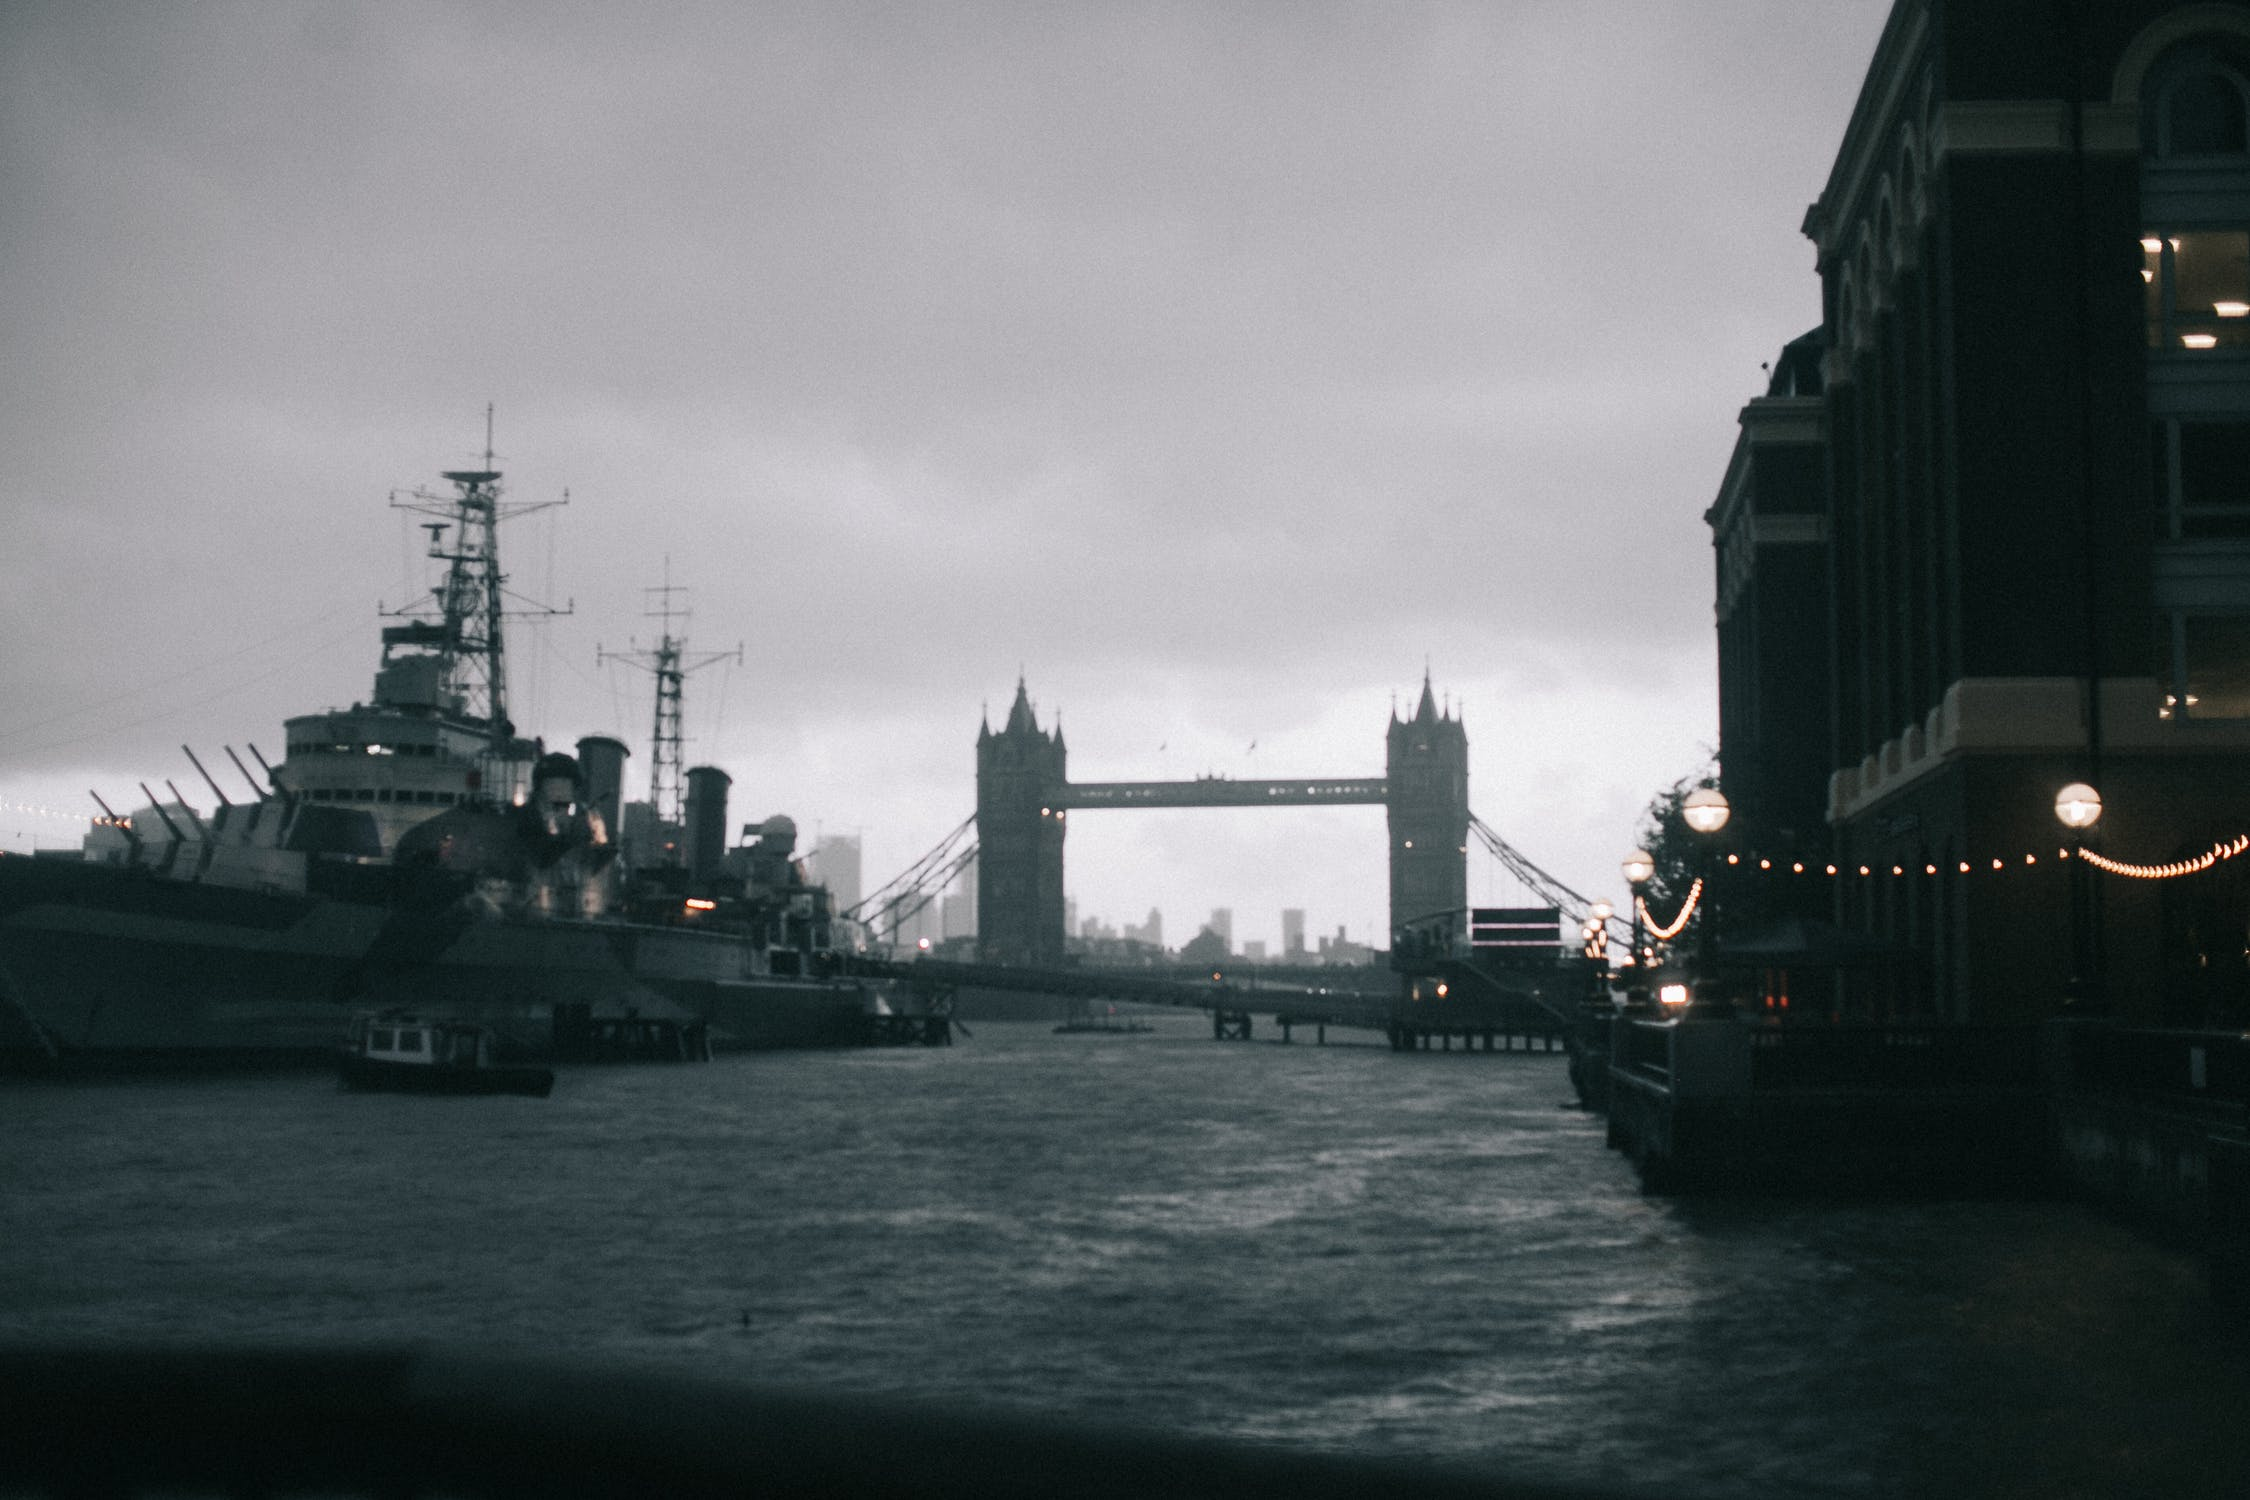 Warship in London bridge.,